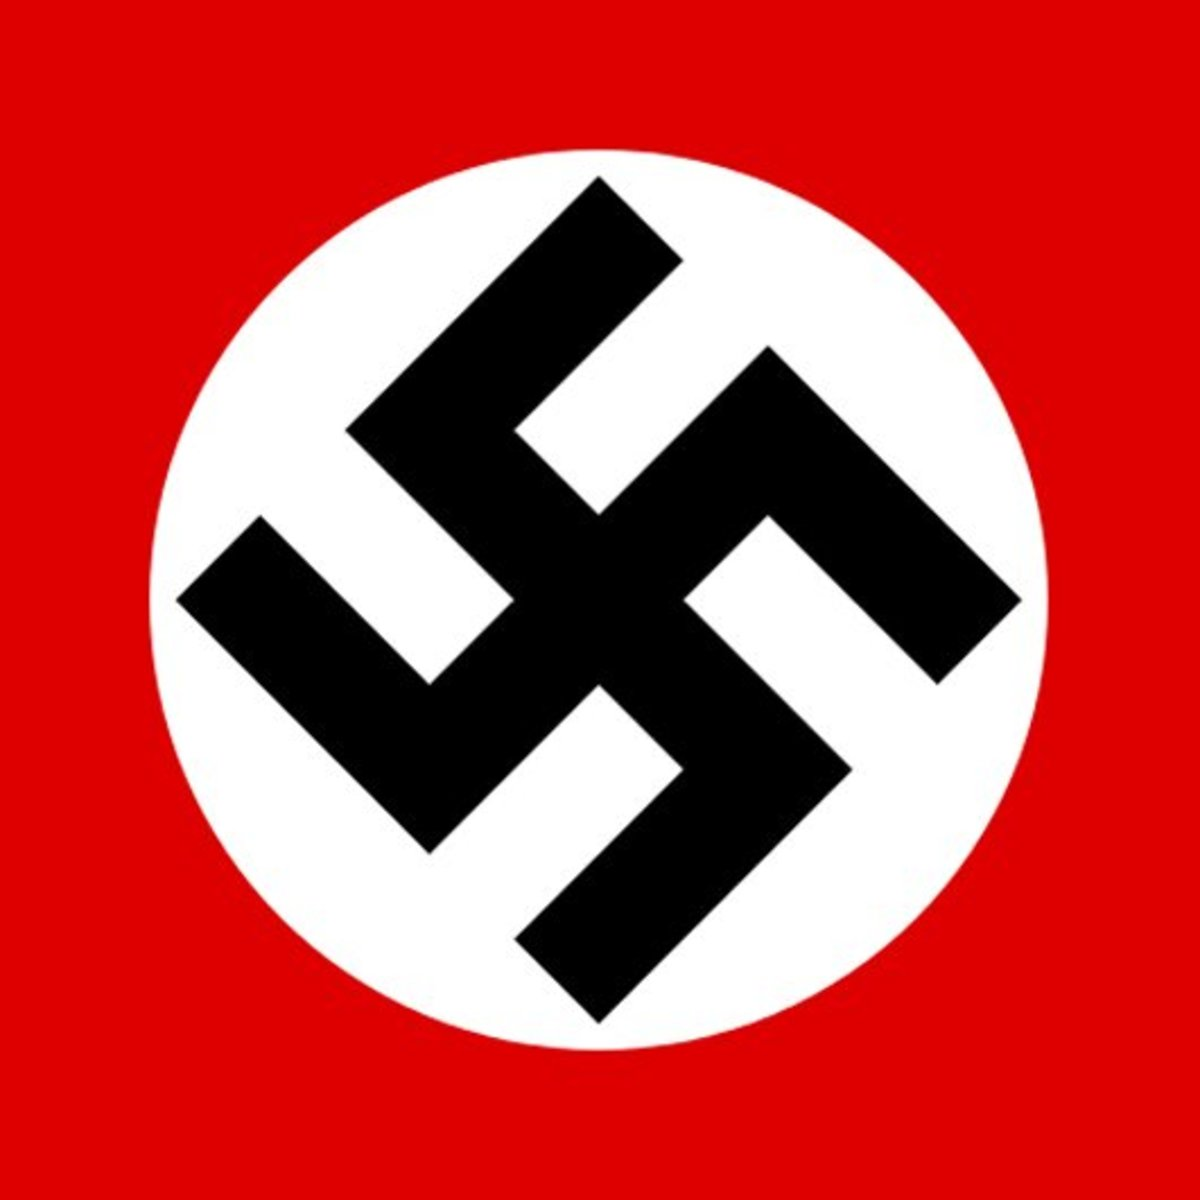 The Nazi Swastika - a one time symbol of good debased beyond redemption?